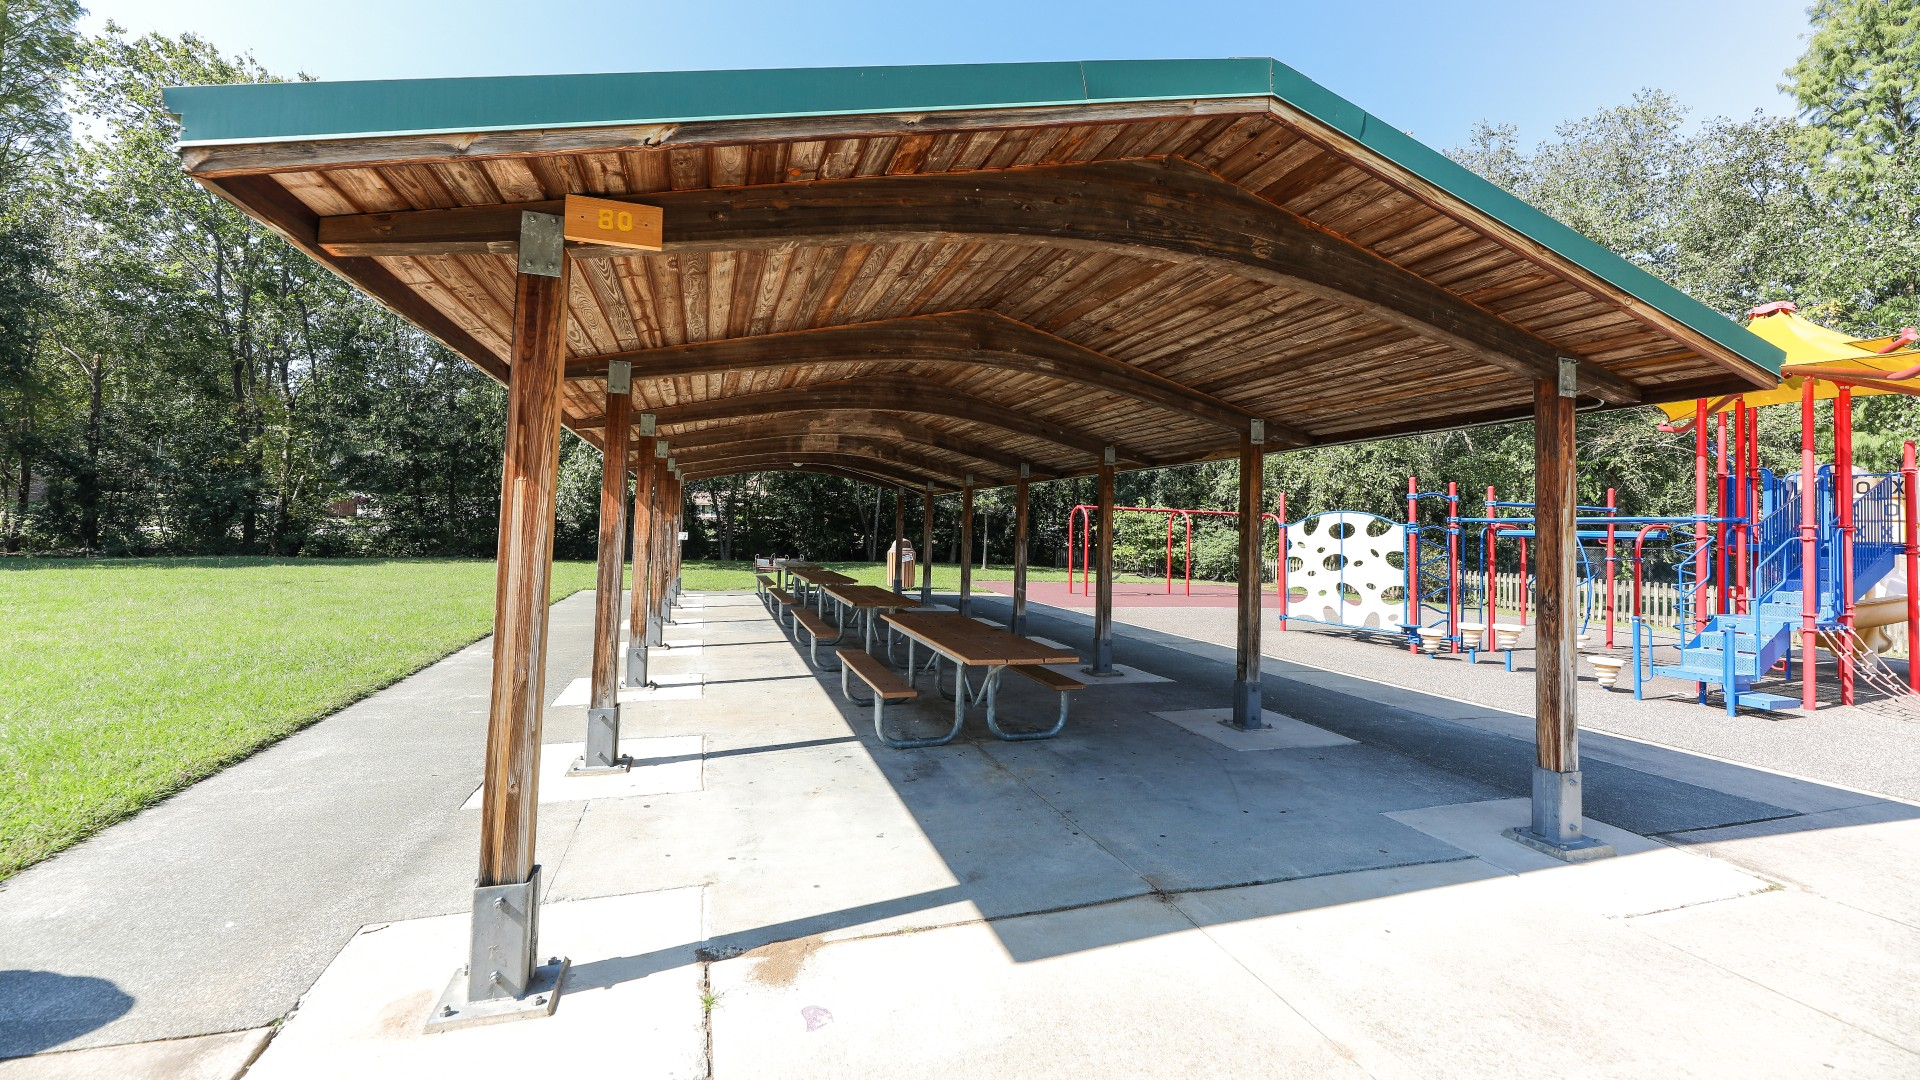 A large, open picnic shelter with several tables